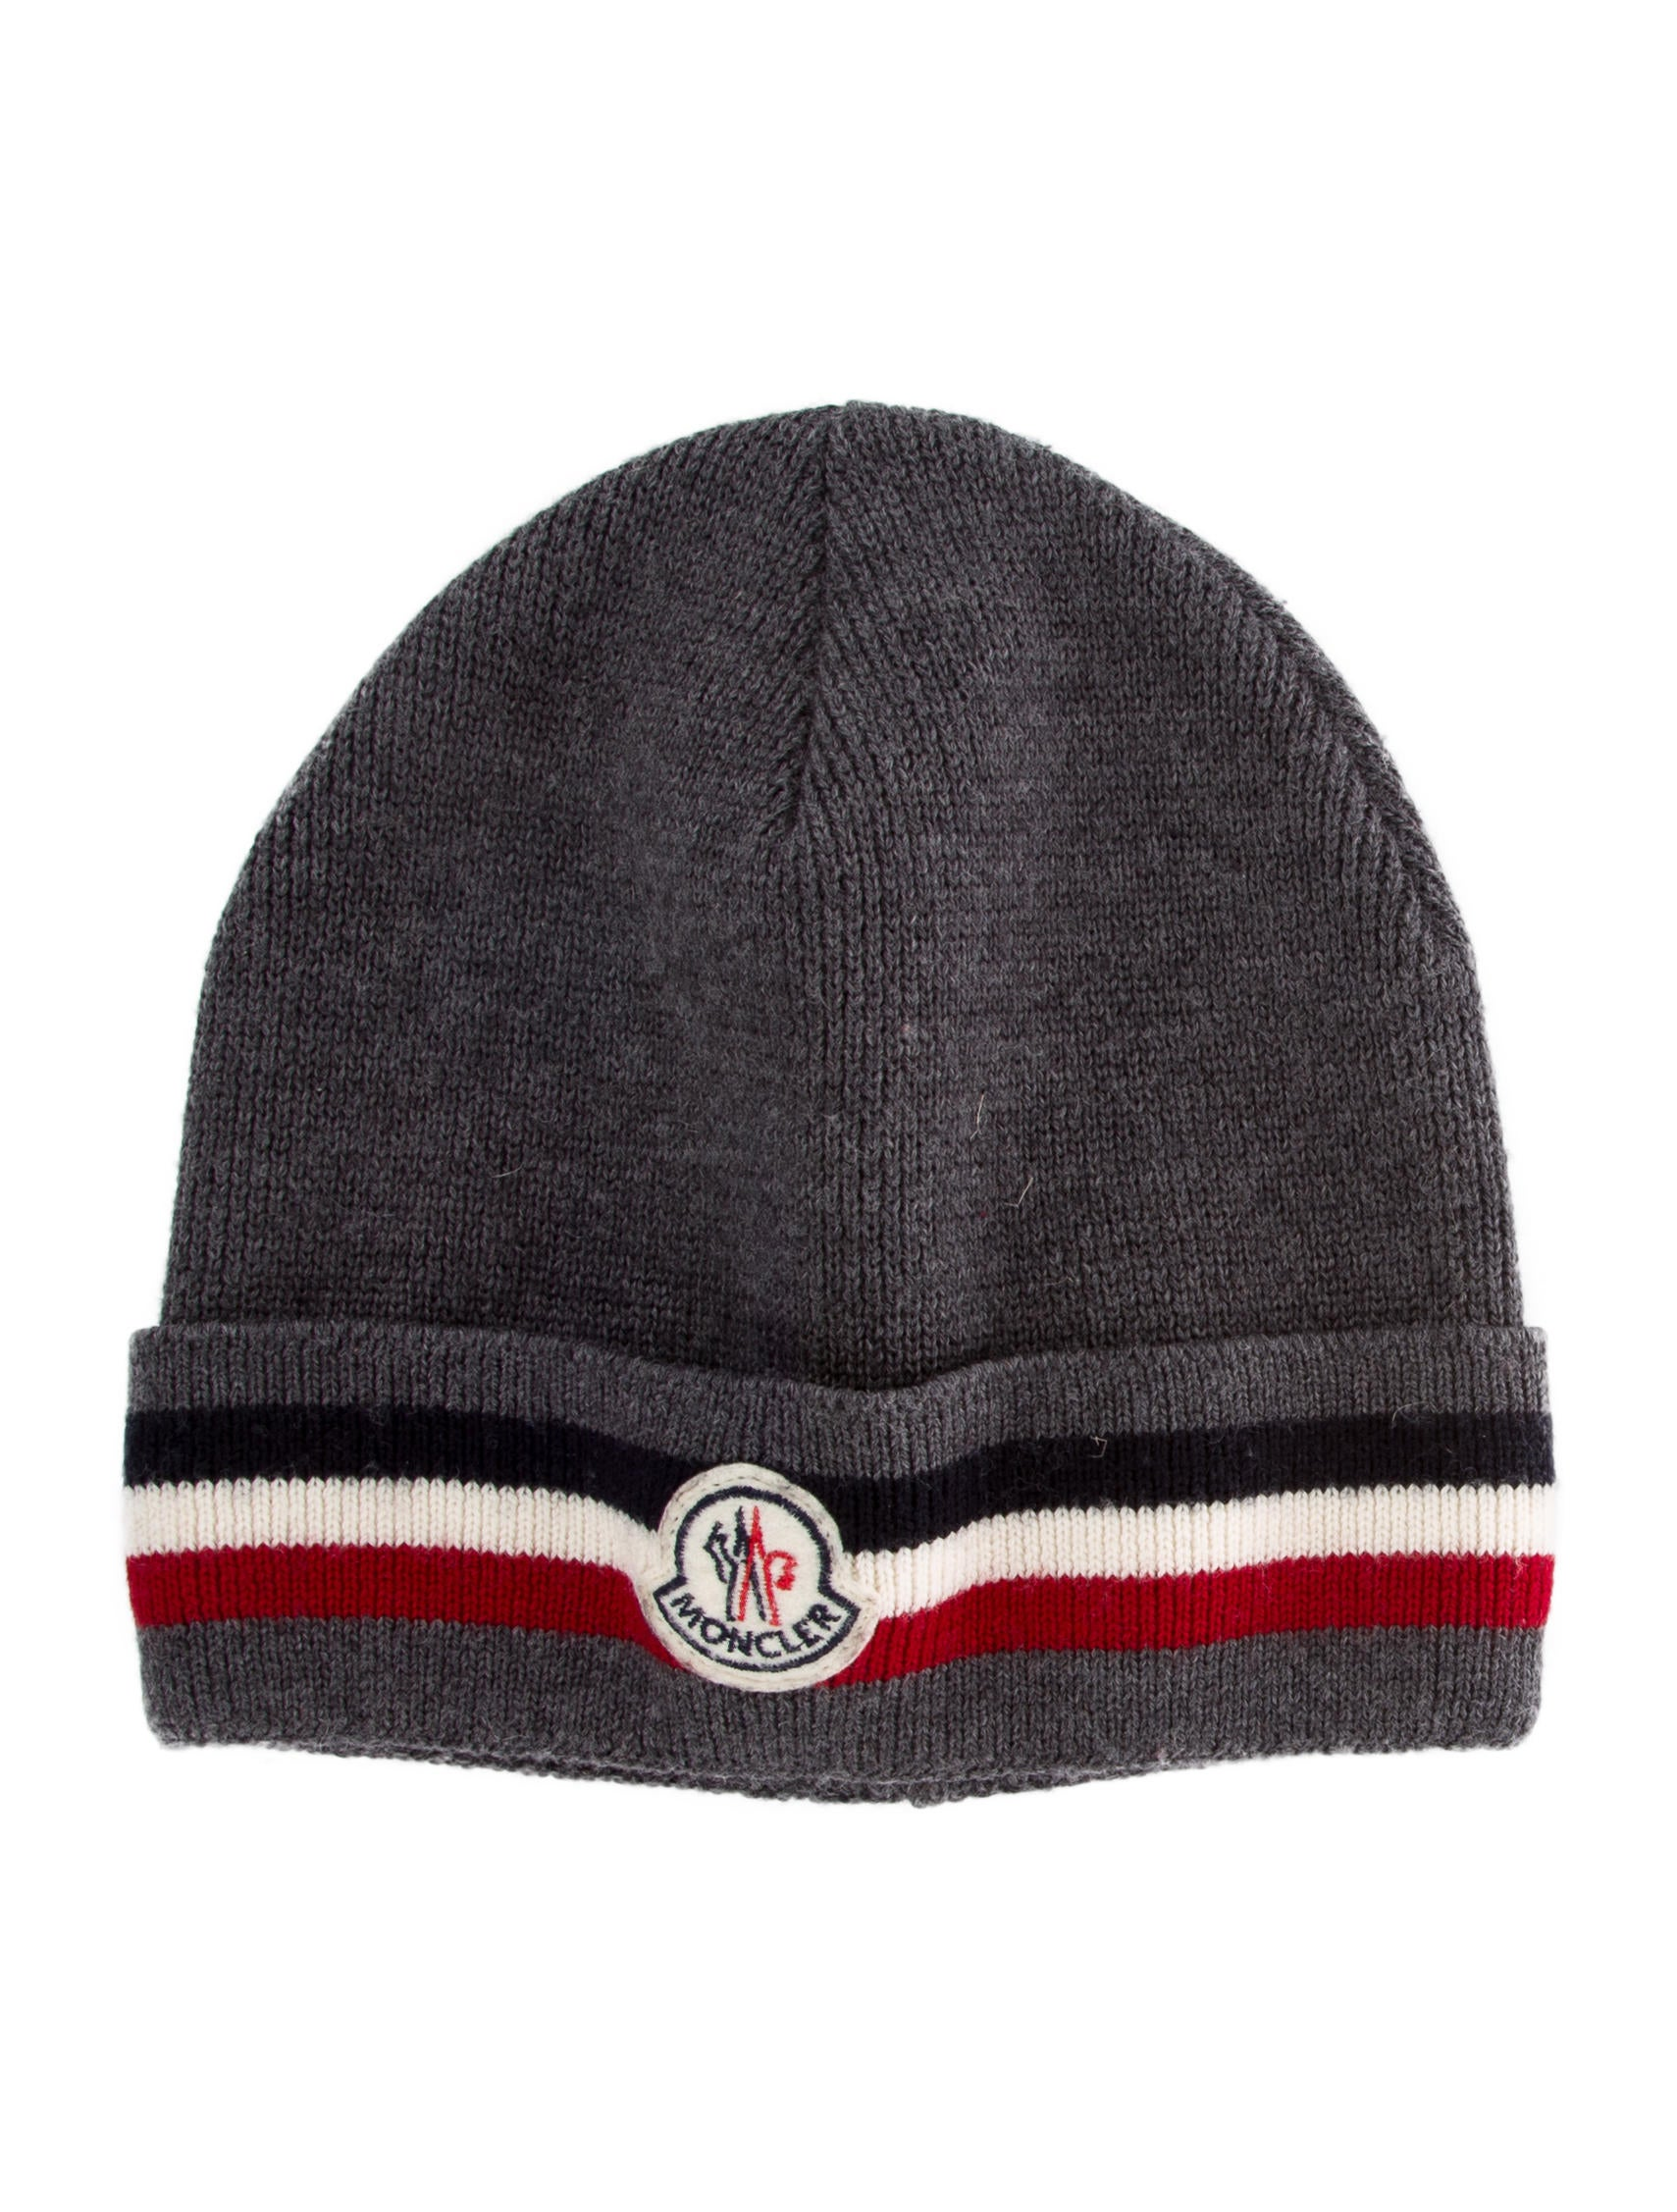 4d959f2b288 Moncler Patterned Virgin Wool Beanie - Accessories - MOC36401